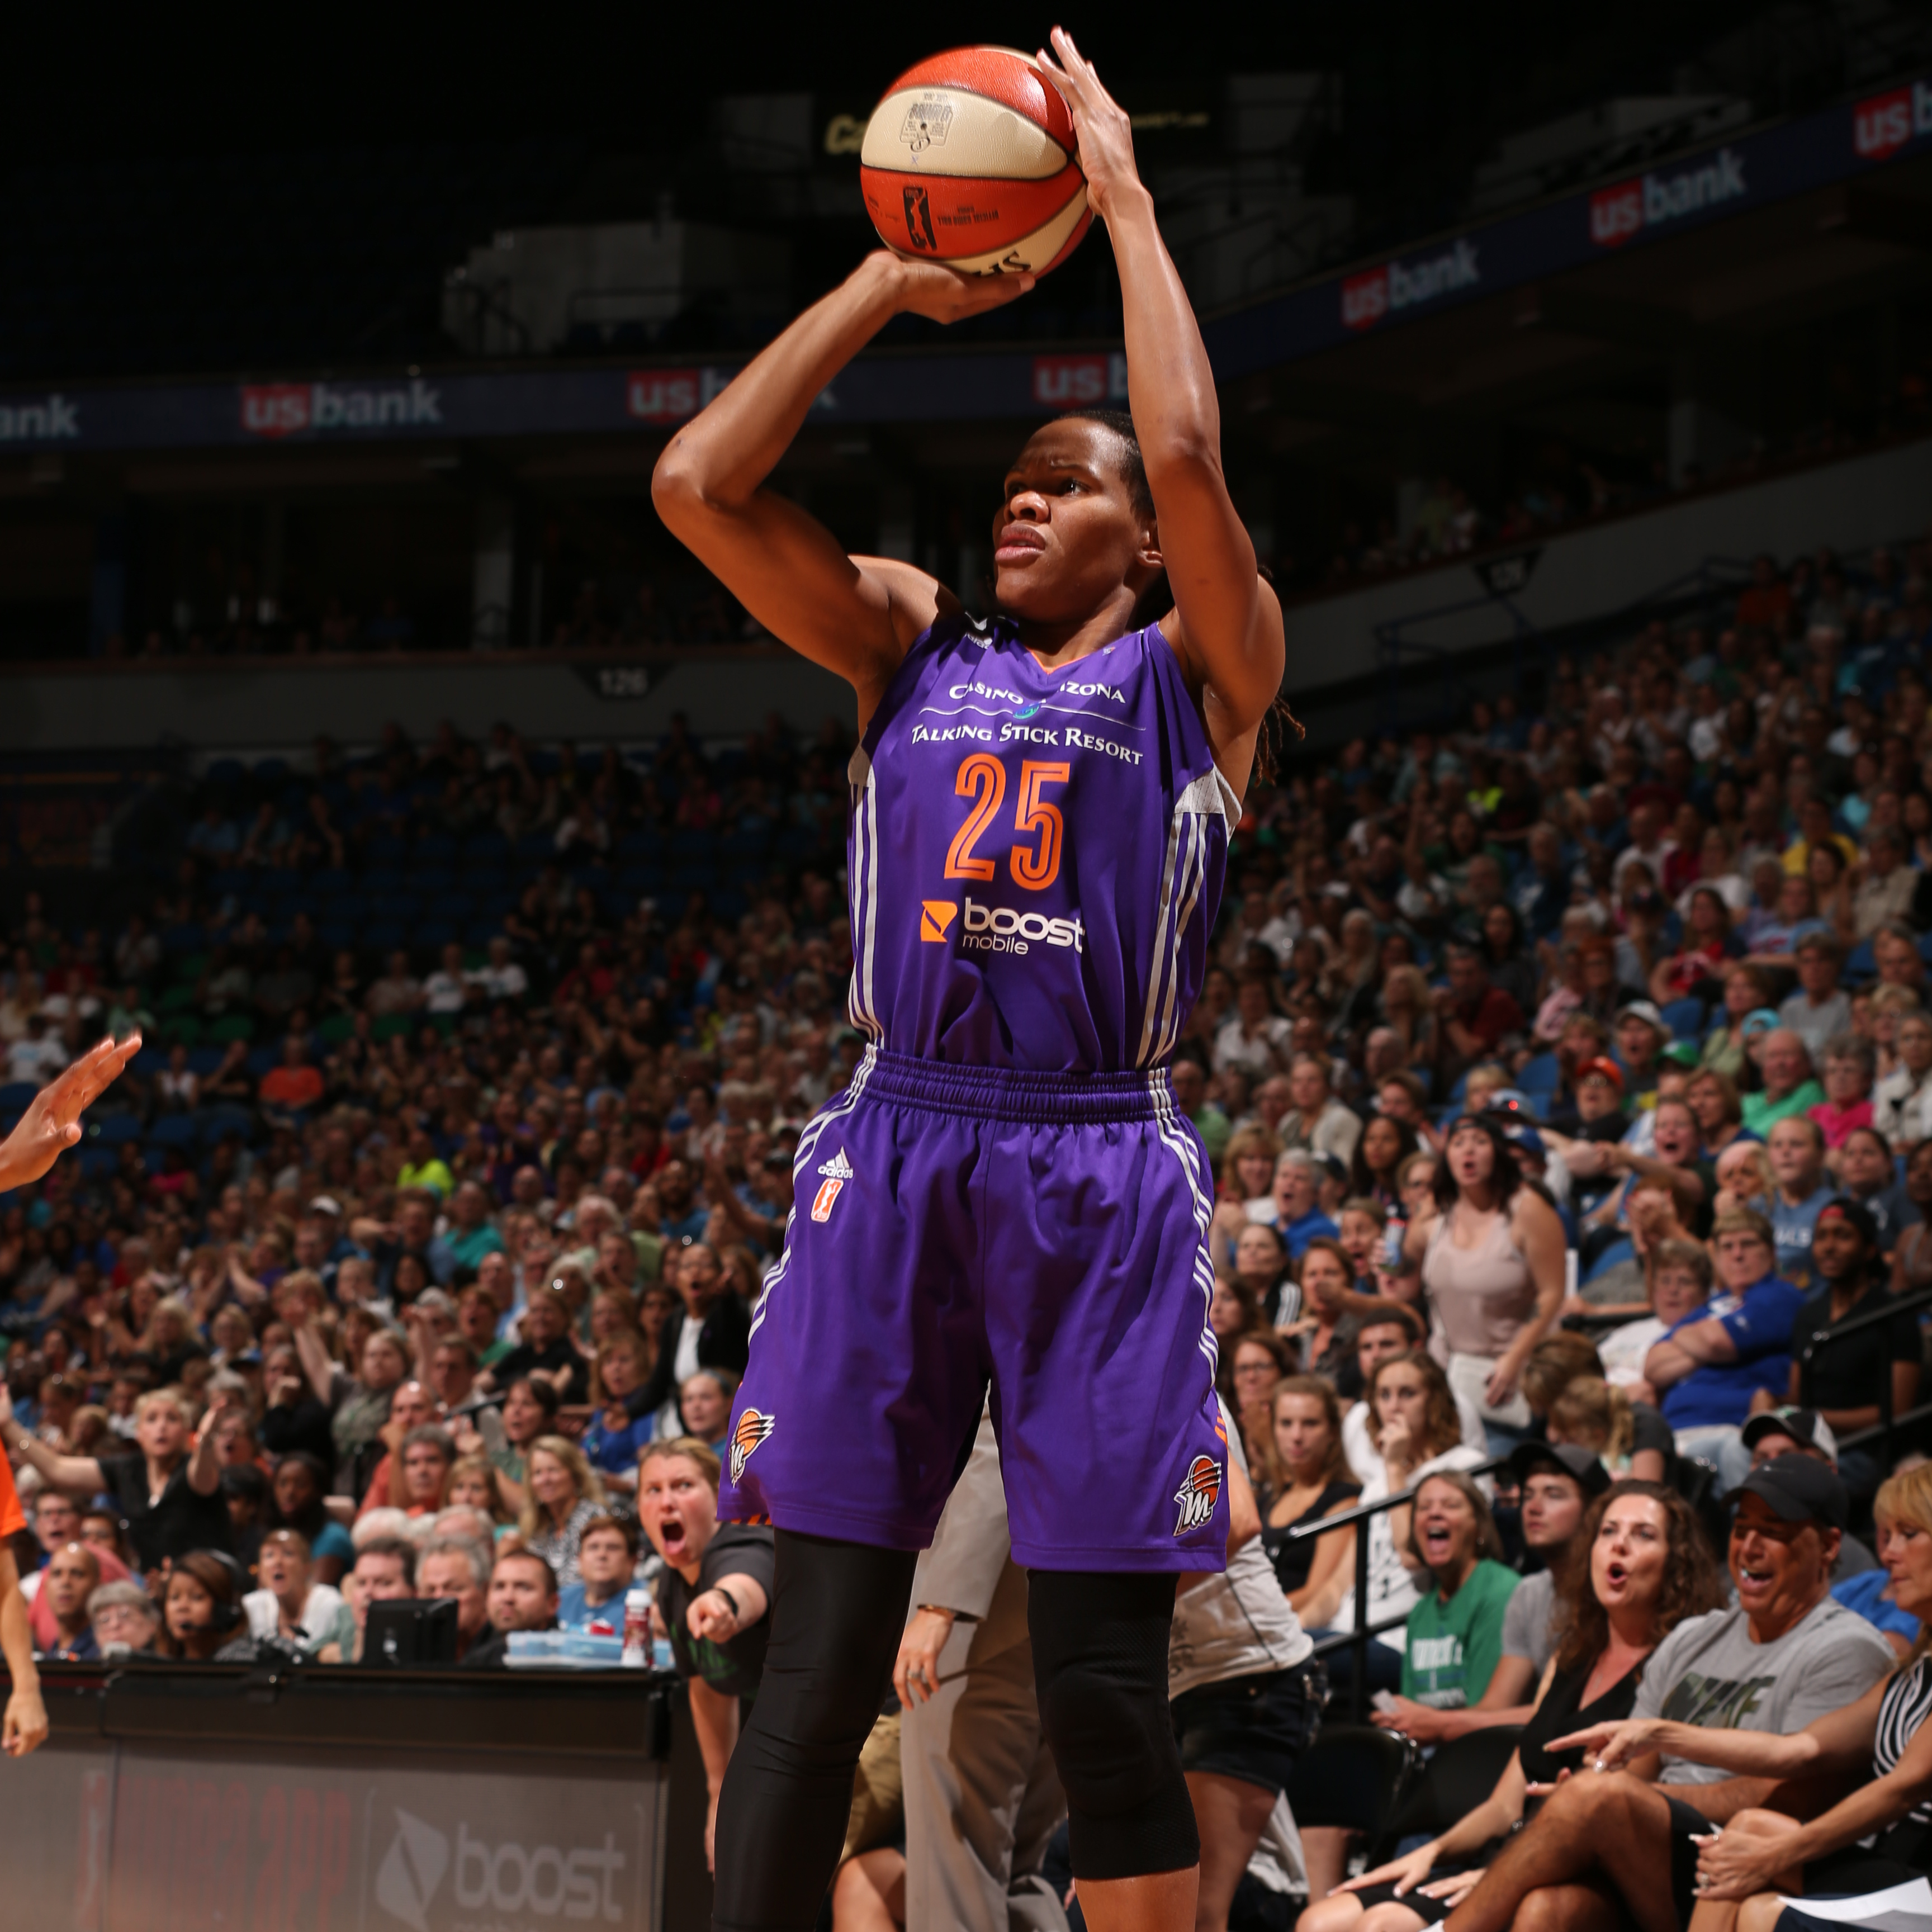 Forward Monique Currie  had a quiet night against the Lynx, finishing with just seven points in 14 minutes of play.